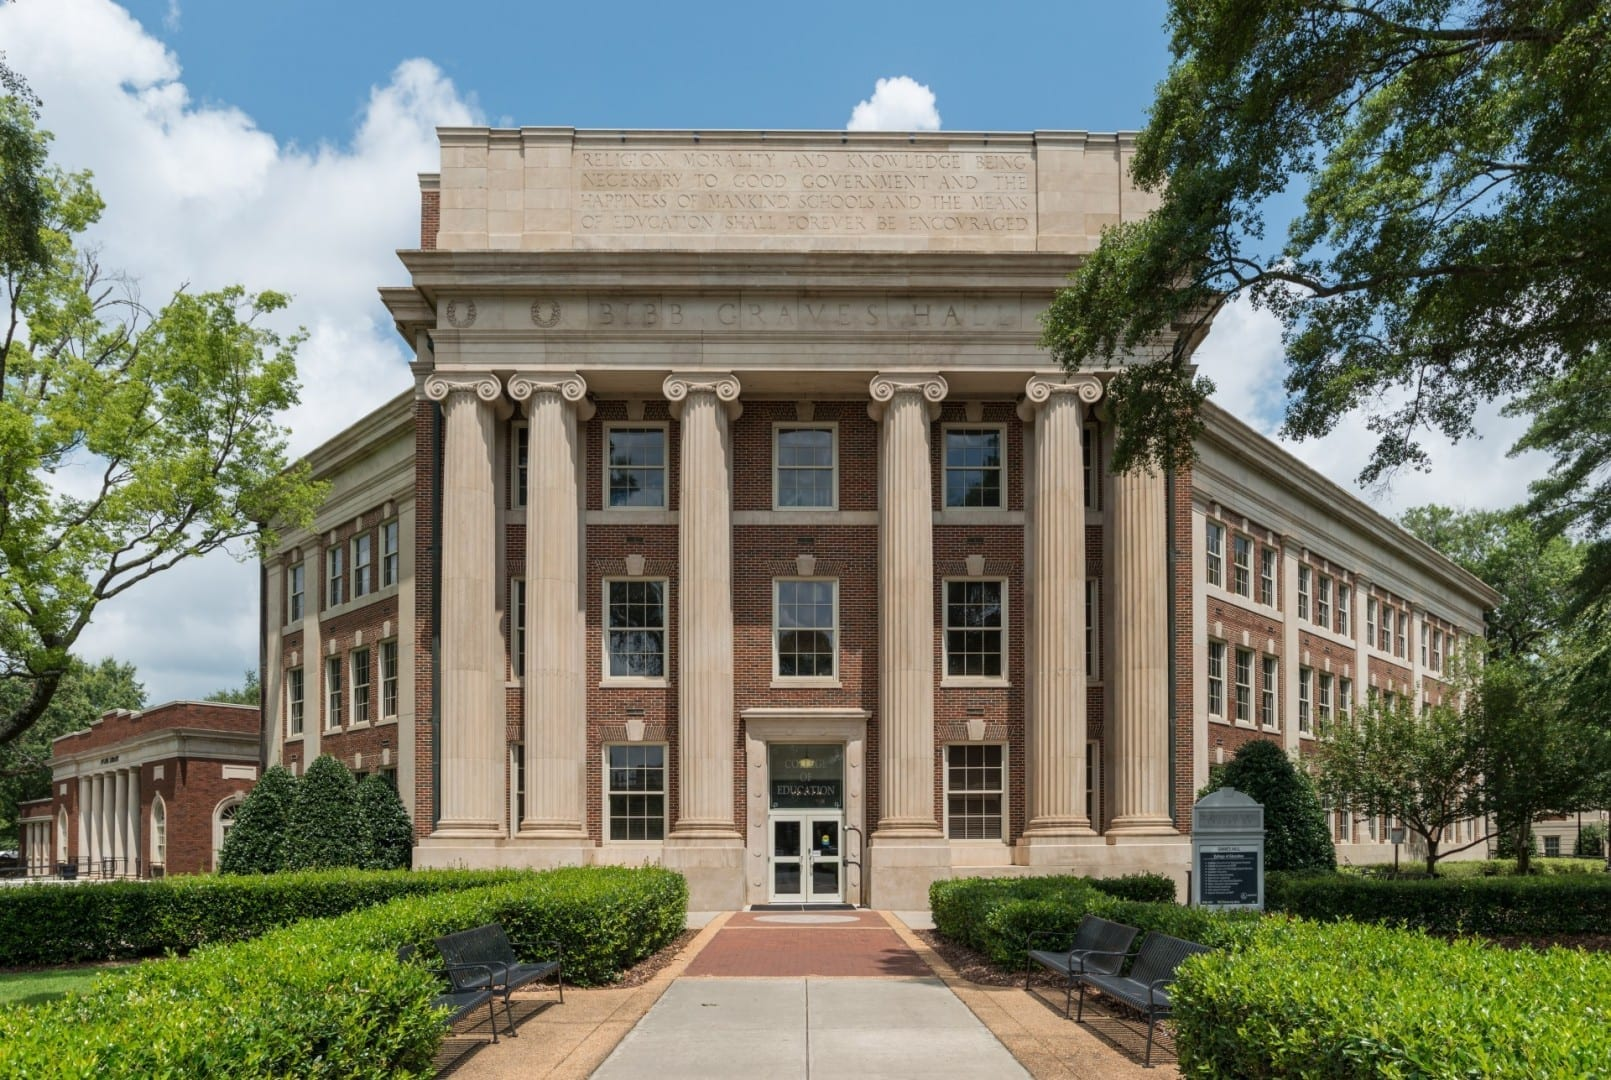 Bibb Graves Hall, Universidad de Alabama Tuscaloosa AL Estados Unidos